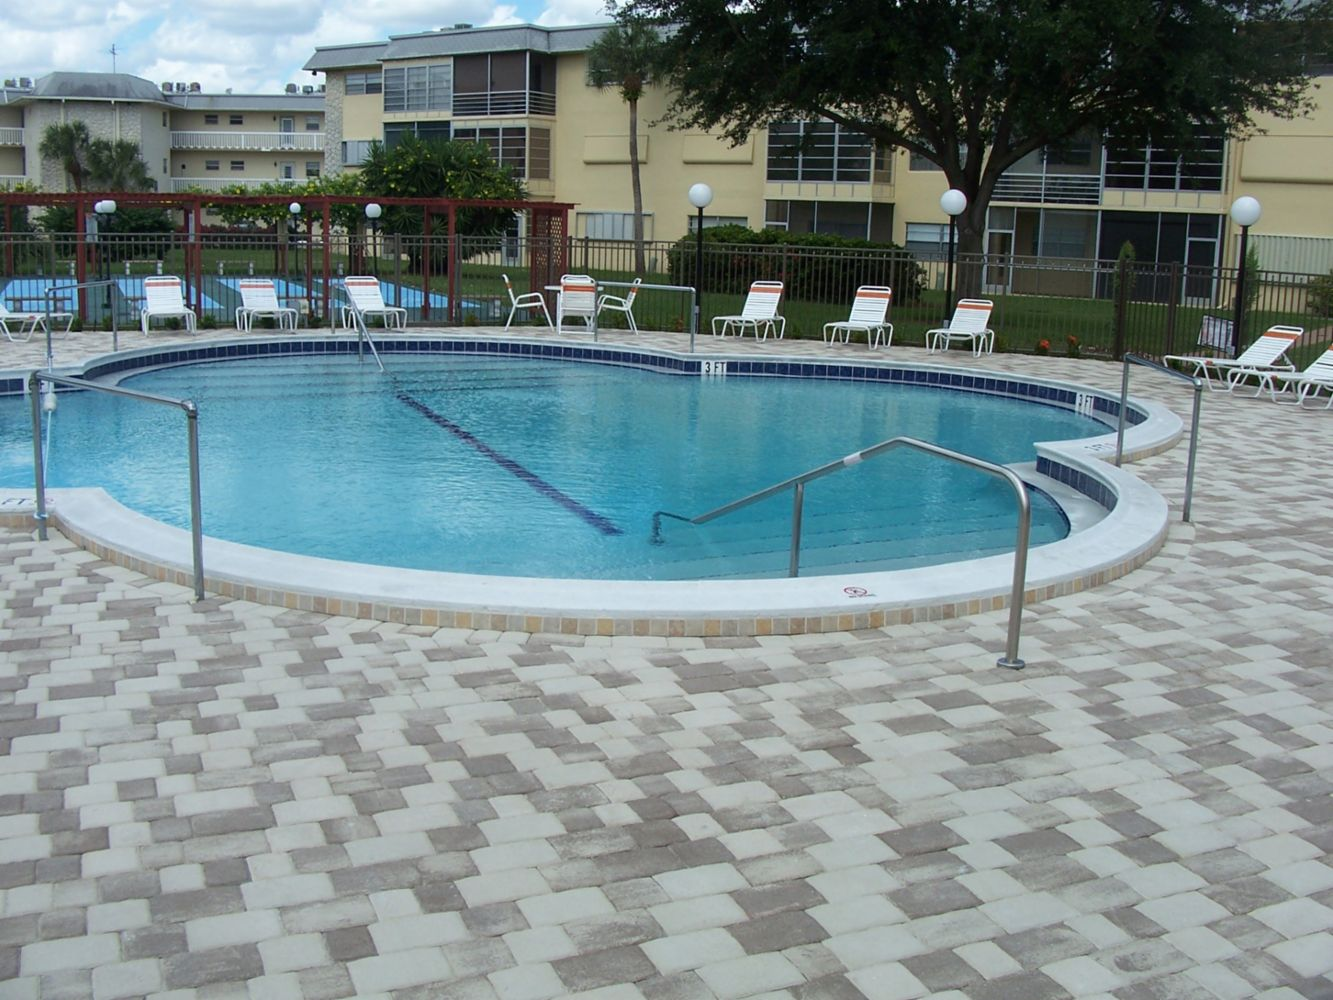 Pool Design And Construction In Fort Lauderdale Fl Parkwood Pools And Pavers Llc